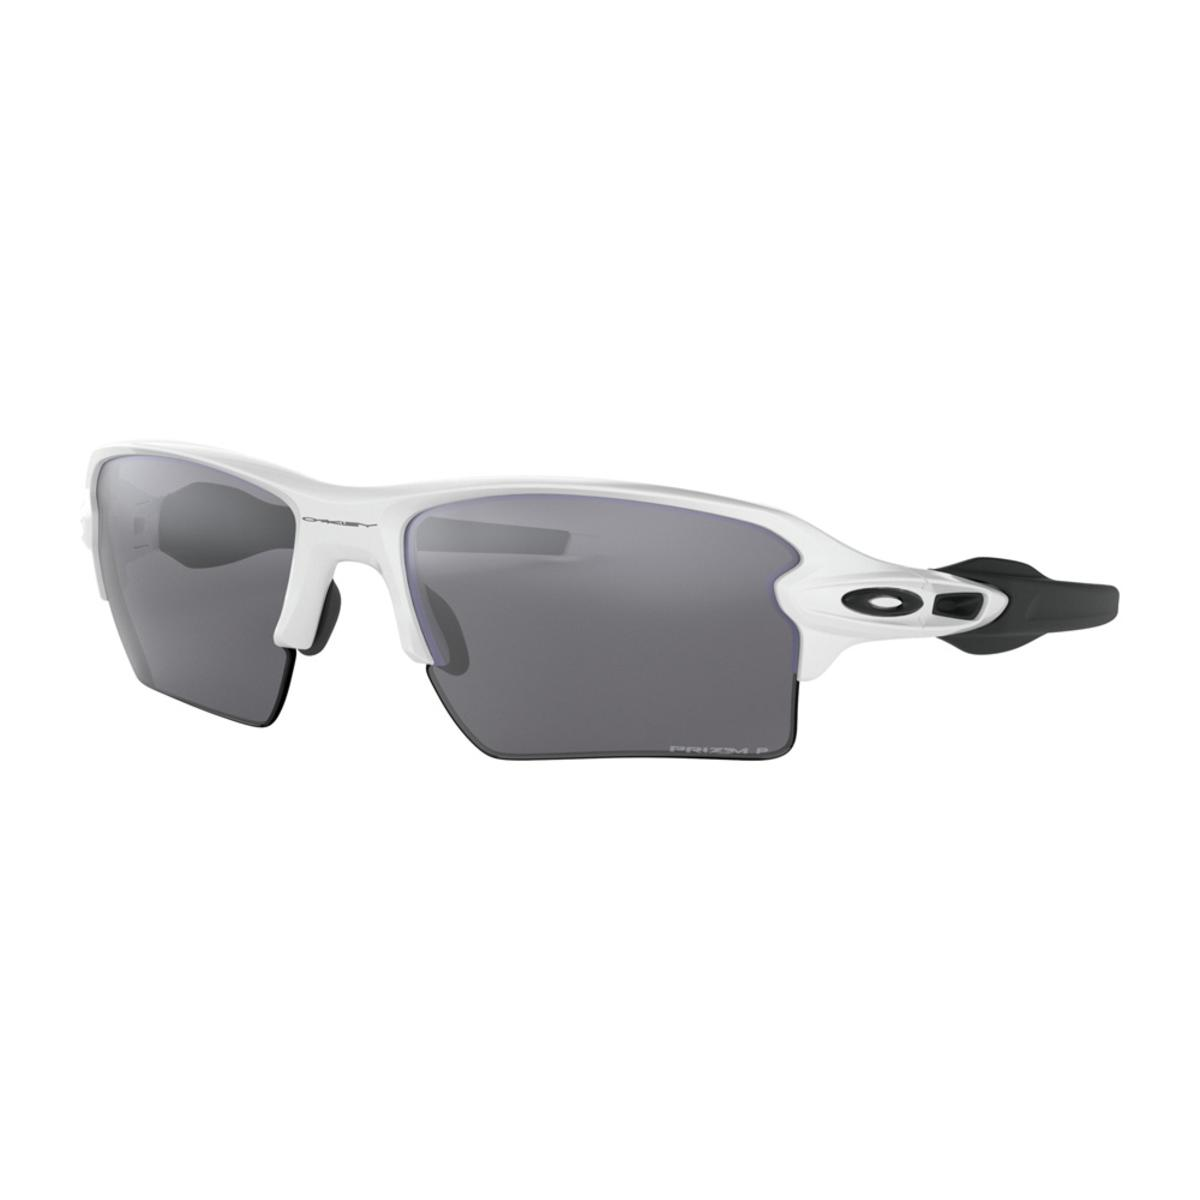 27566ba3a88 Oakley Flak 2.0 XL Polished White Black Sunglasses w Prizm Black Polarized  - The Warming Store